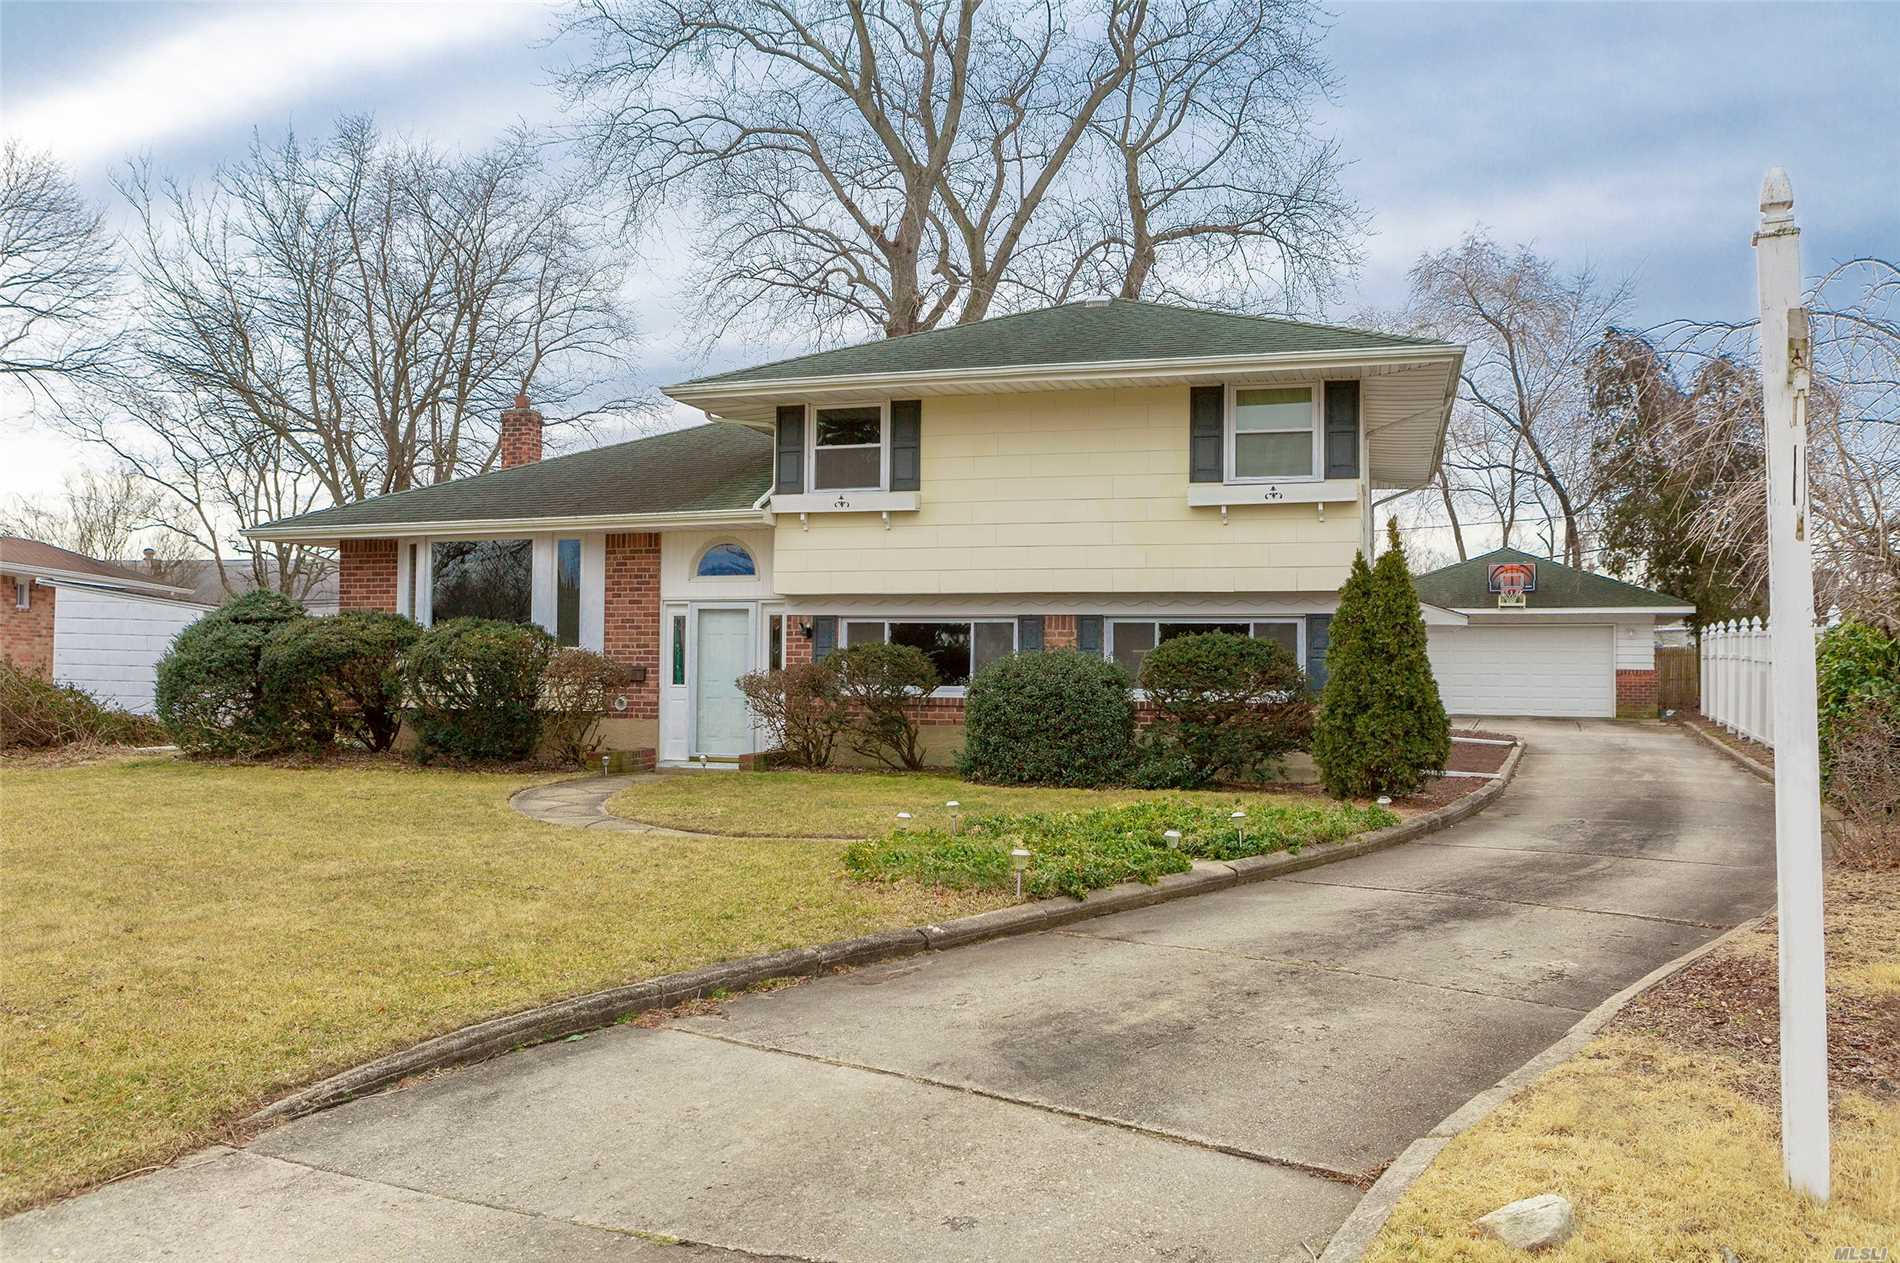 Come and see this over-sized and meticulously maintained split. Features include open floor plan, EIK, DR, large living room, two full baths, family room, Florida room, basement, detached two car garage, gas cooking/heat, and new water heater. Conveniently located to shops and parkways. All this on a beautiful block in Commack schools. Hurry, wont last!